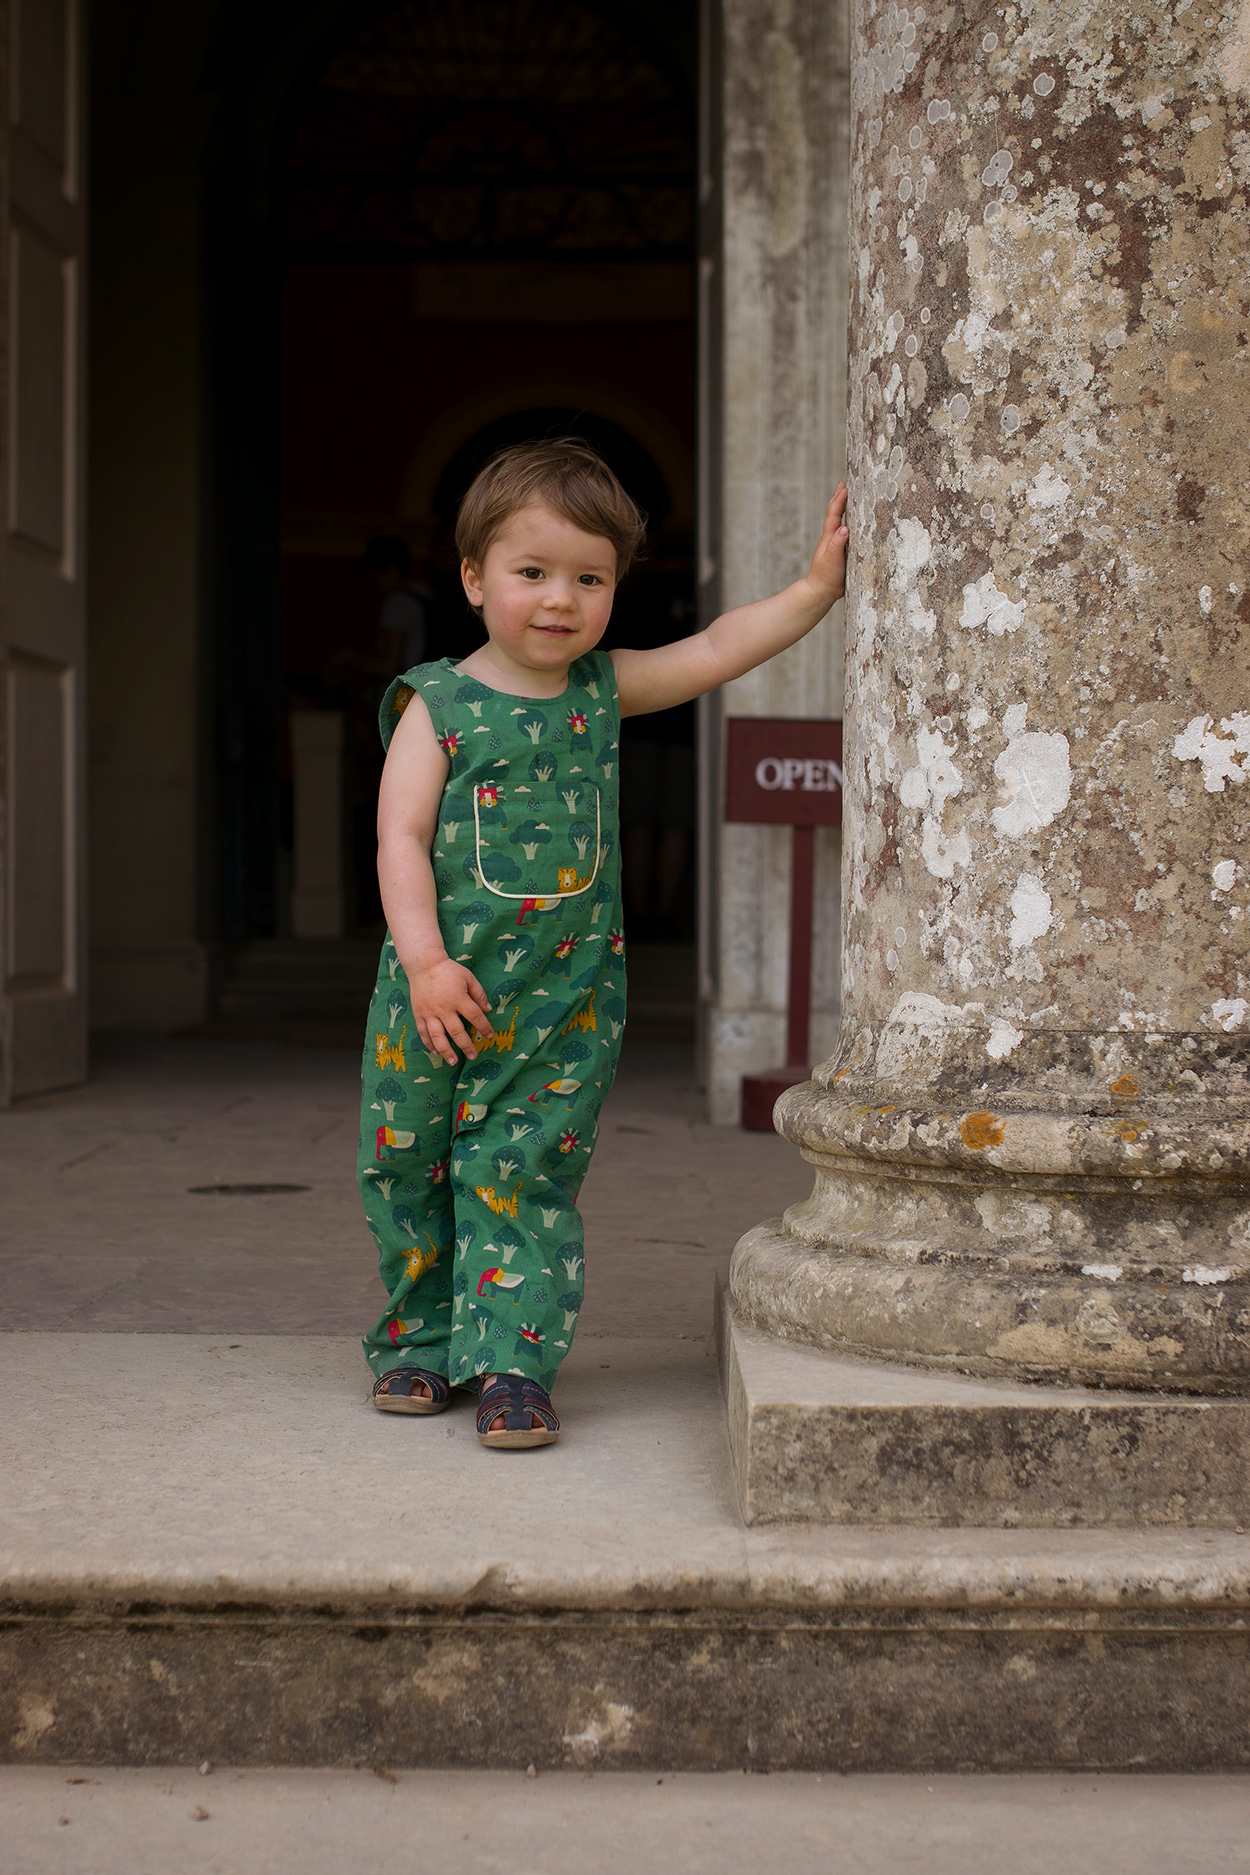 Two brothers wearing Little Green Radicals, organic clothing brand, Wanderlust, Jungle Adventures Dungarees, visiting Stourhead National Trust for Easter with Mum and grandparents